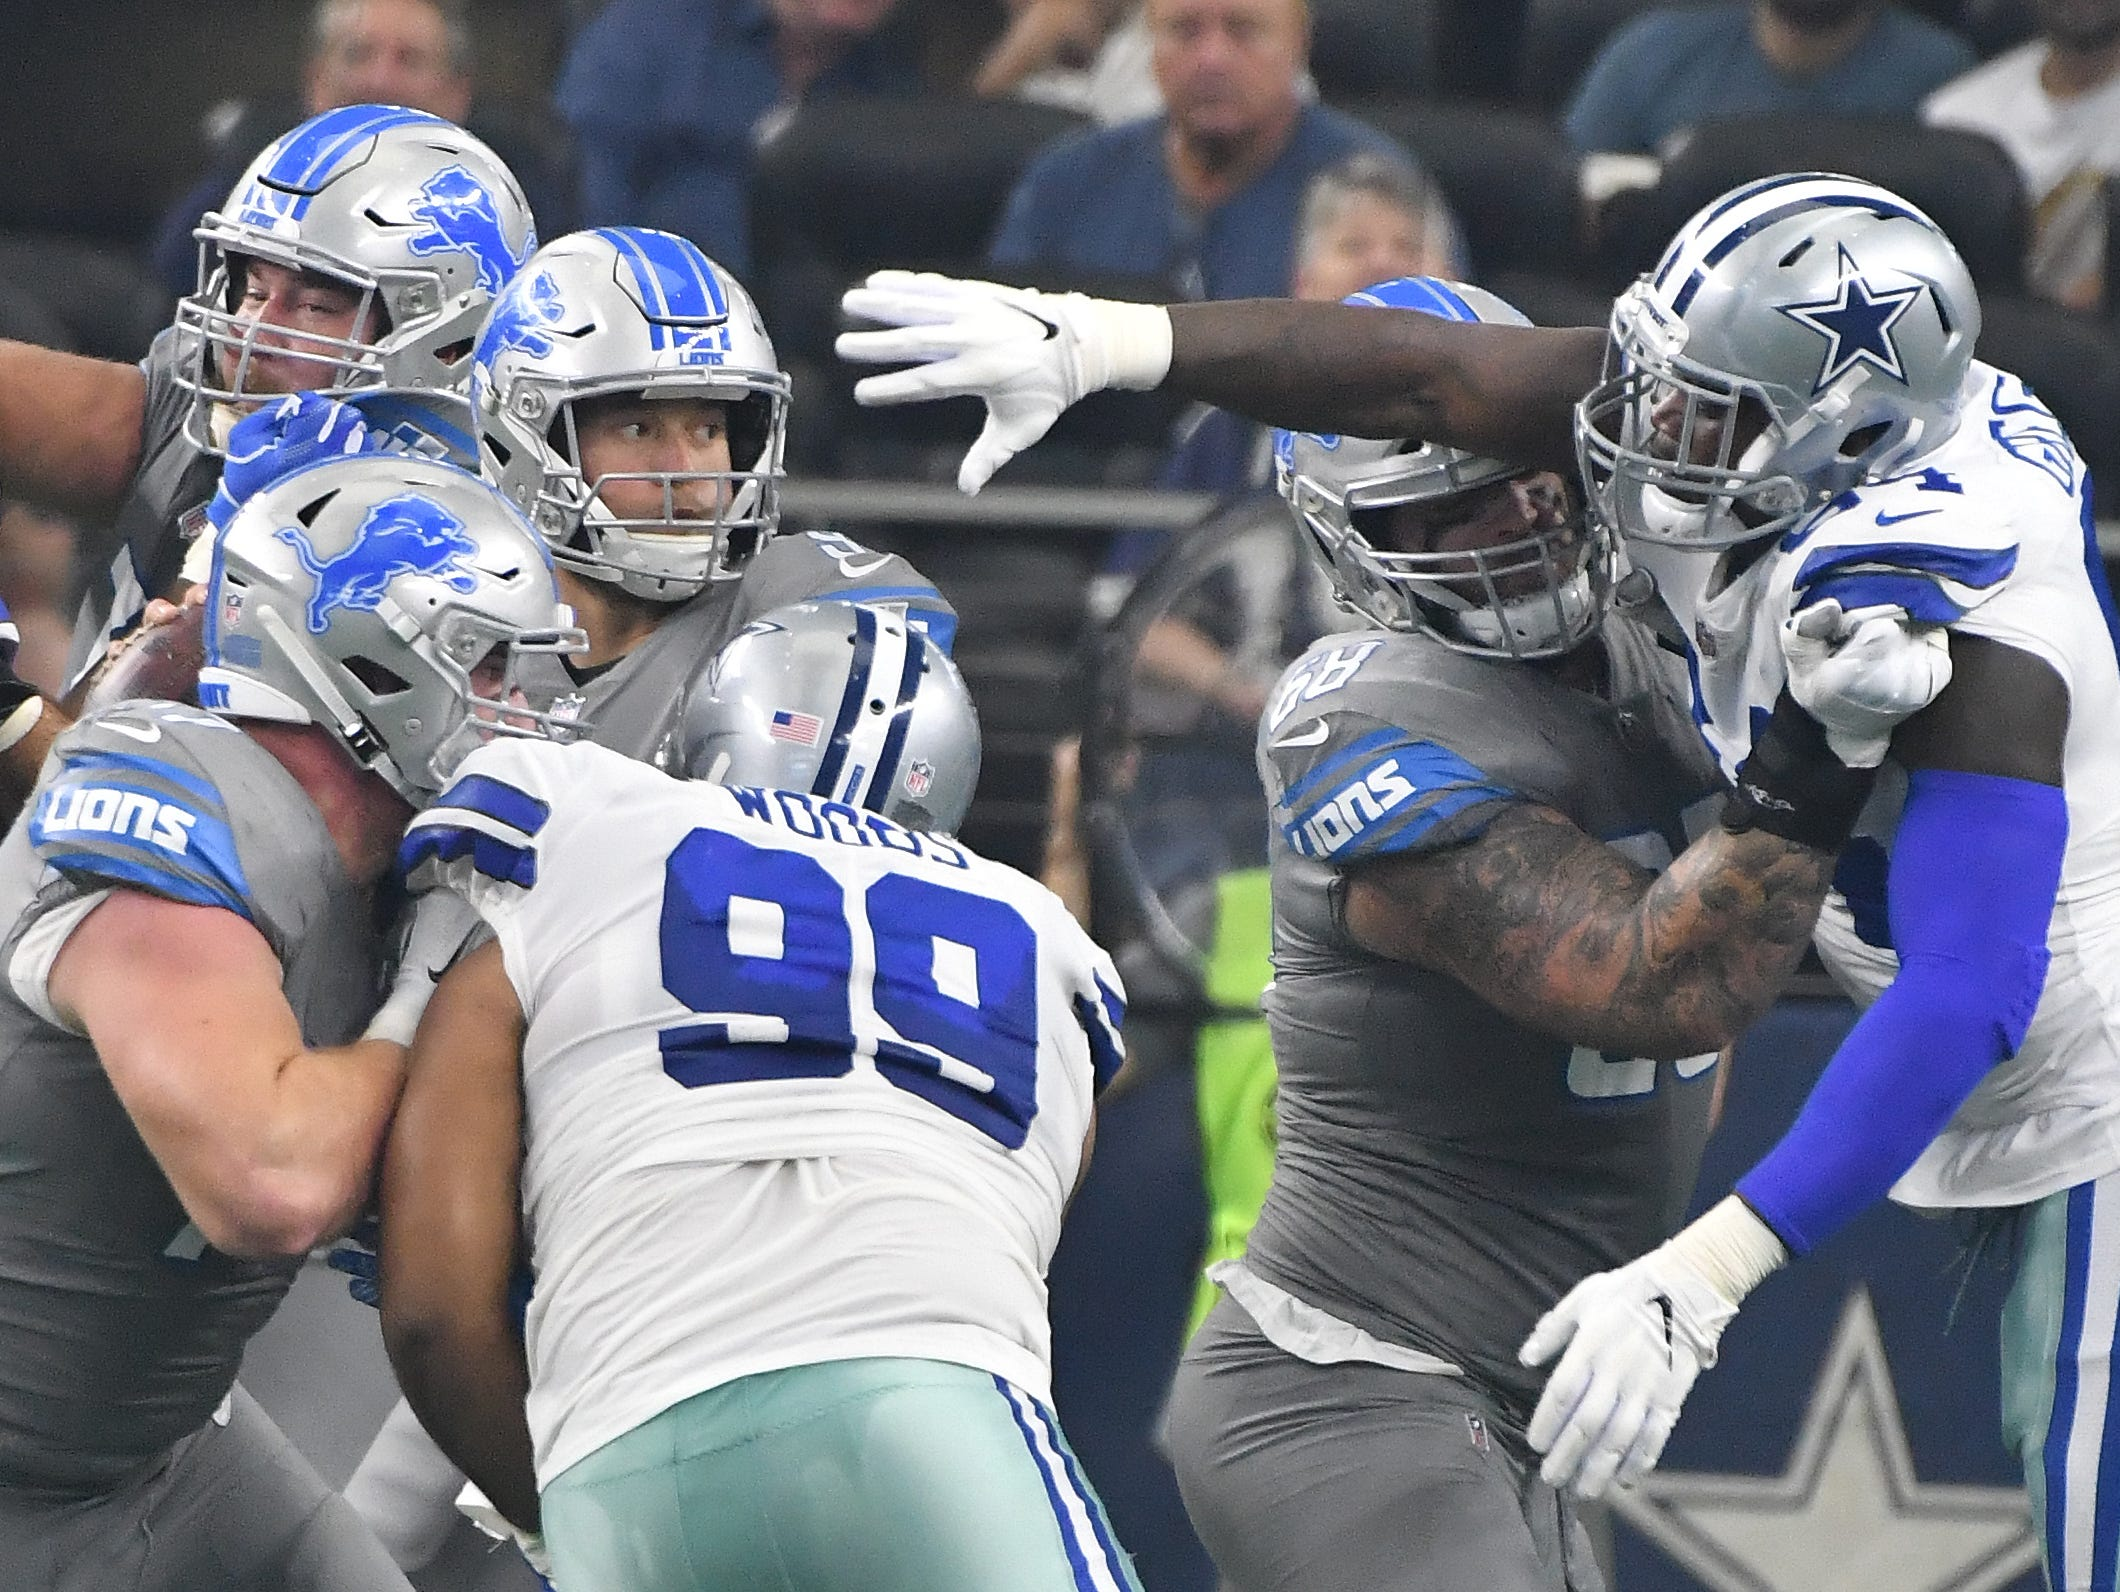 Lions quarterback Matthew Stafford feels some pressure from Cowboys' Randy Gregory in the first quarter.